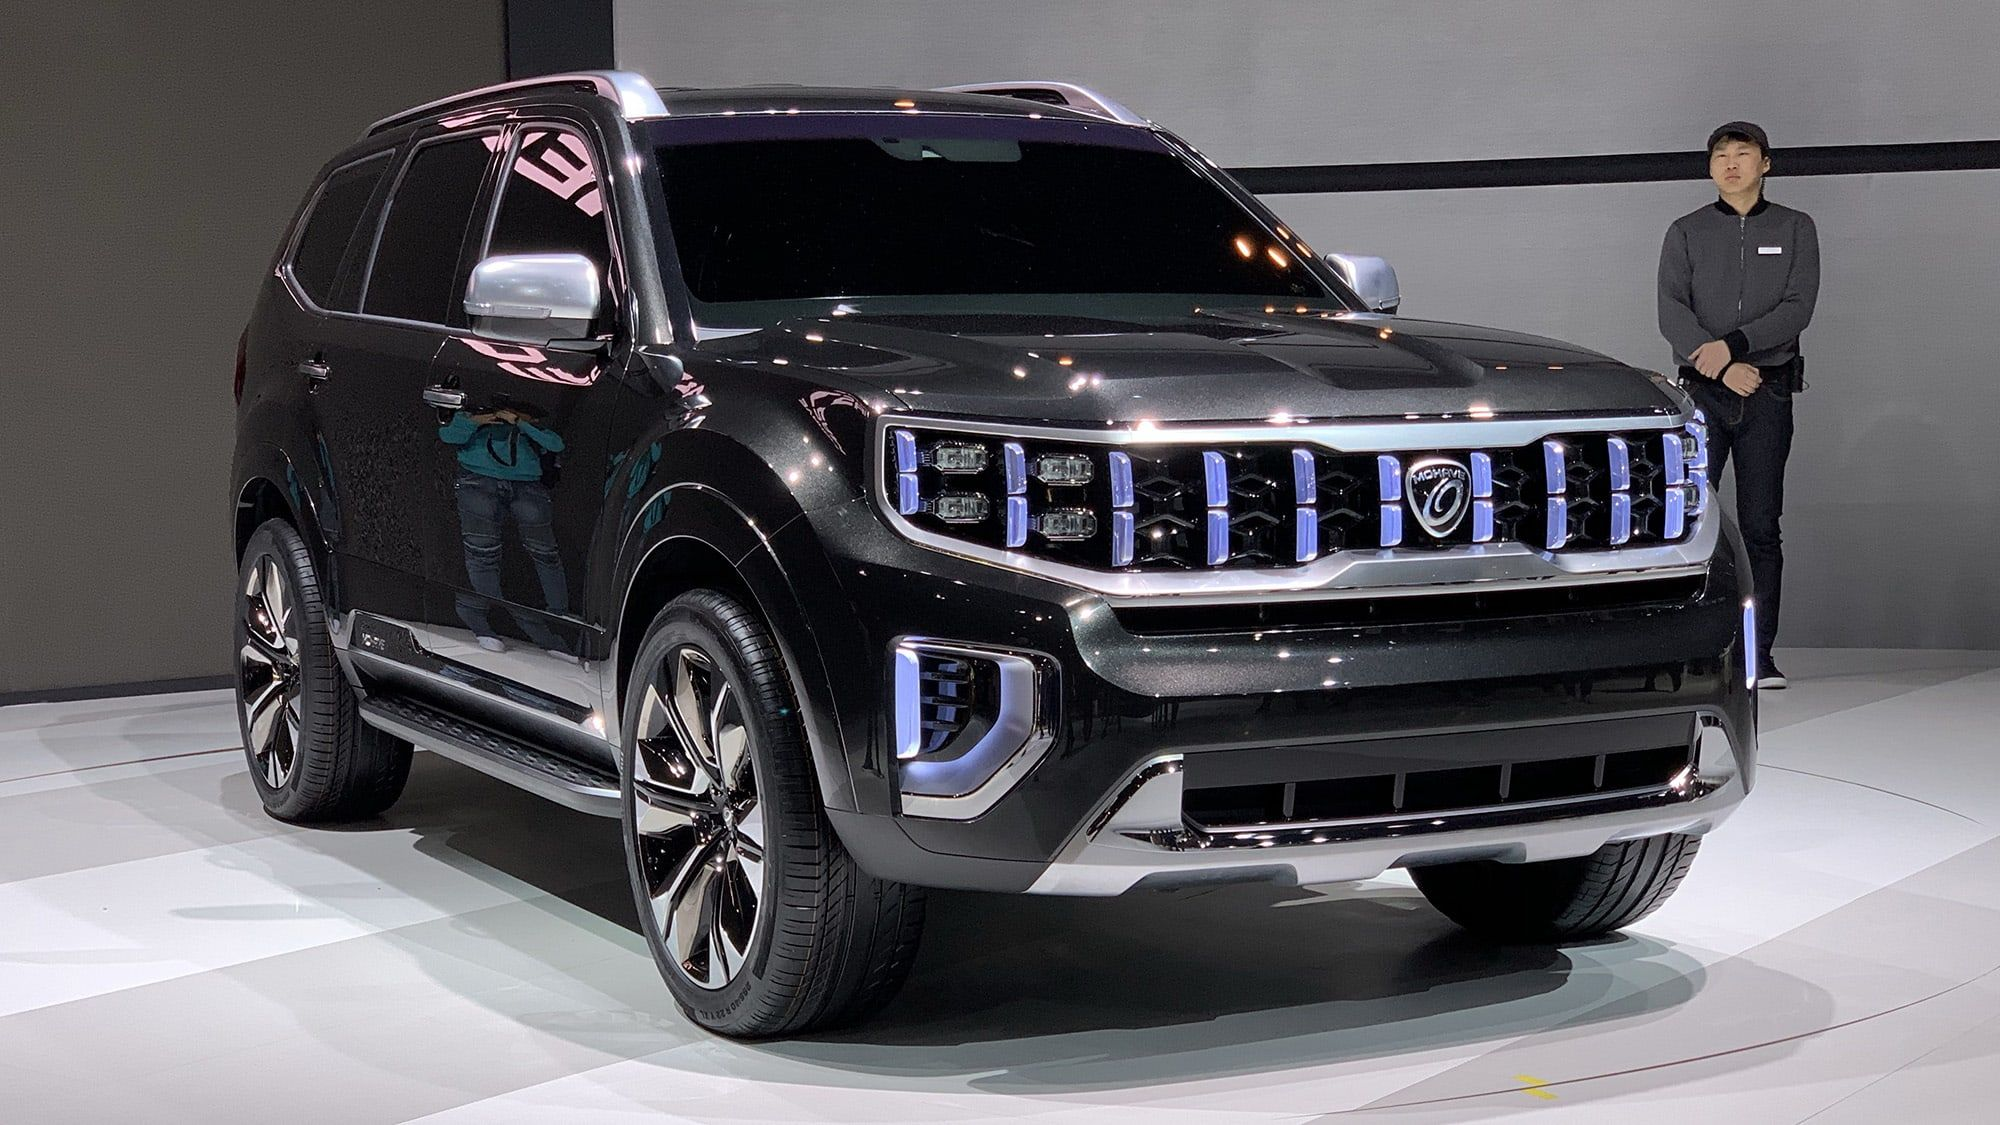 Kia Mohave Masterpiece Sp Signature Concepts Revealed In Seoul Korean Brand Previews Two Suvs With Full Size Off Roader And Revised Kia Kia Motors Suv Models